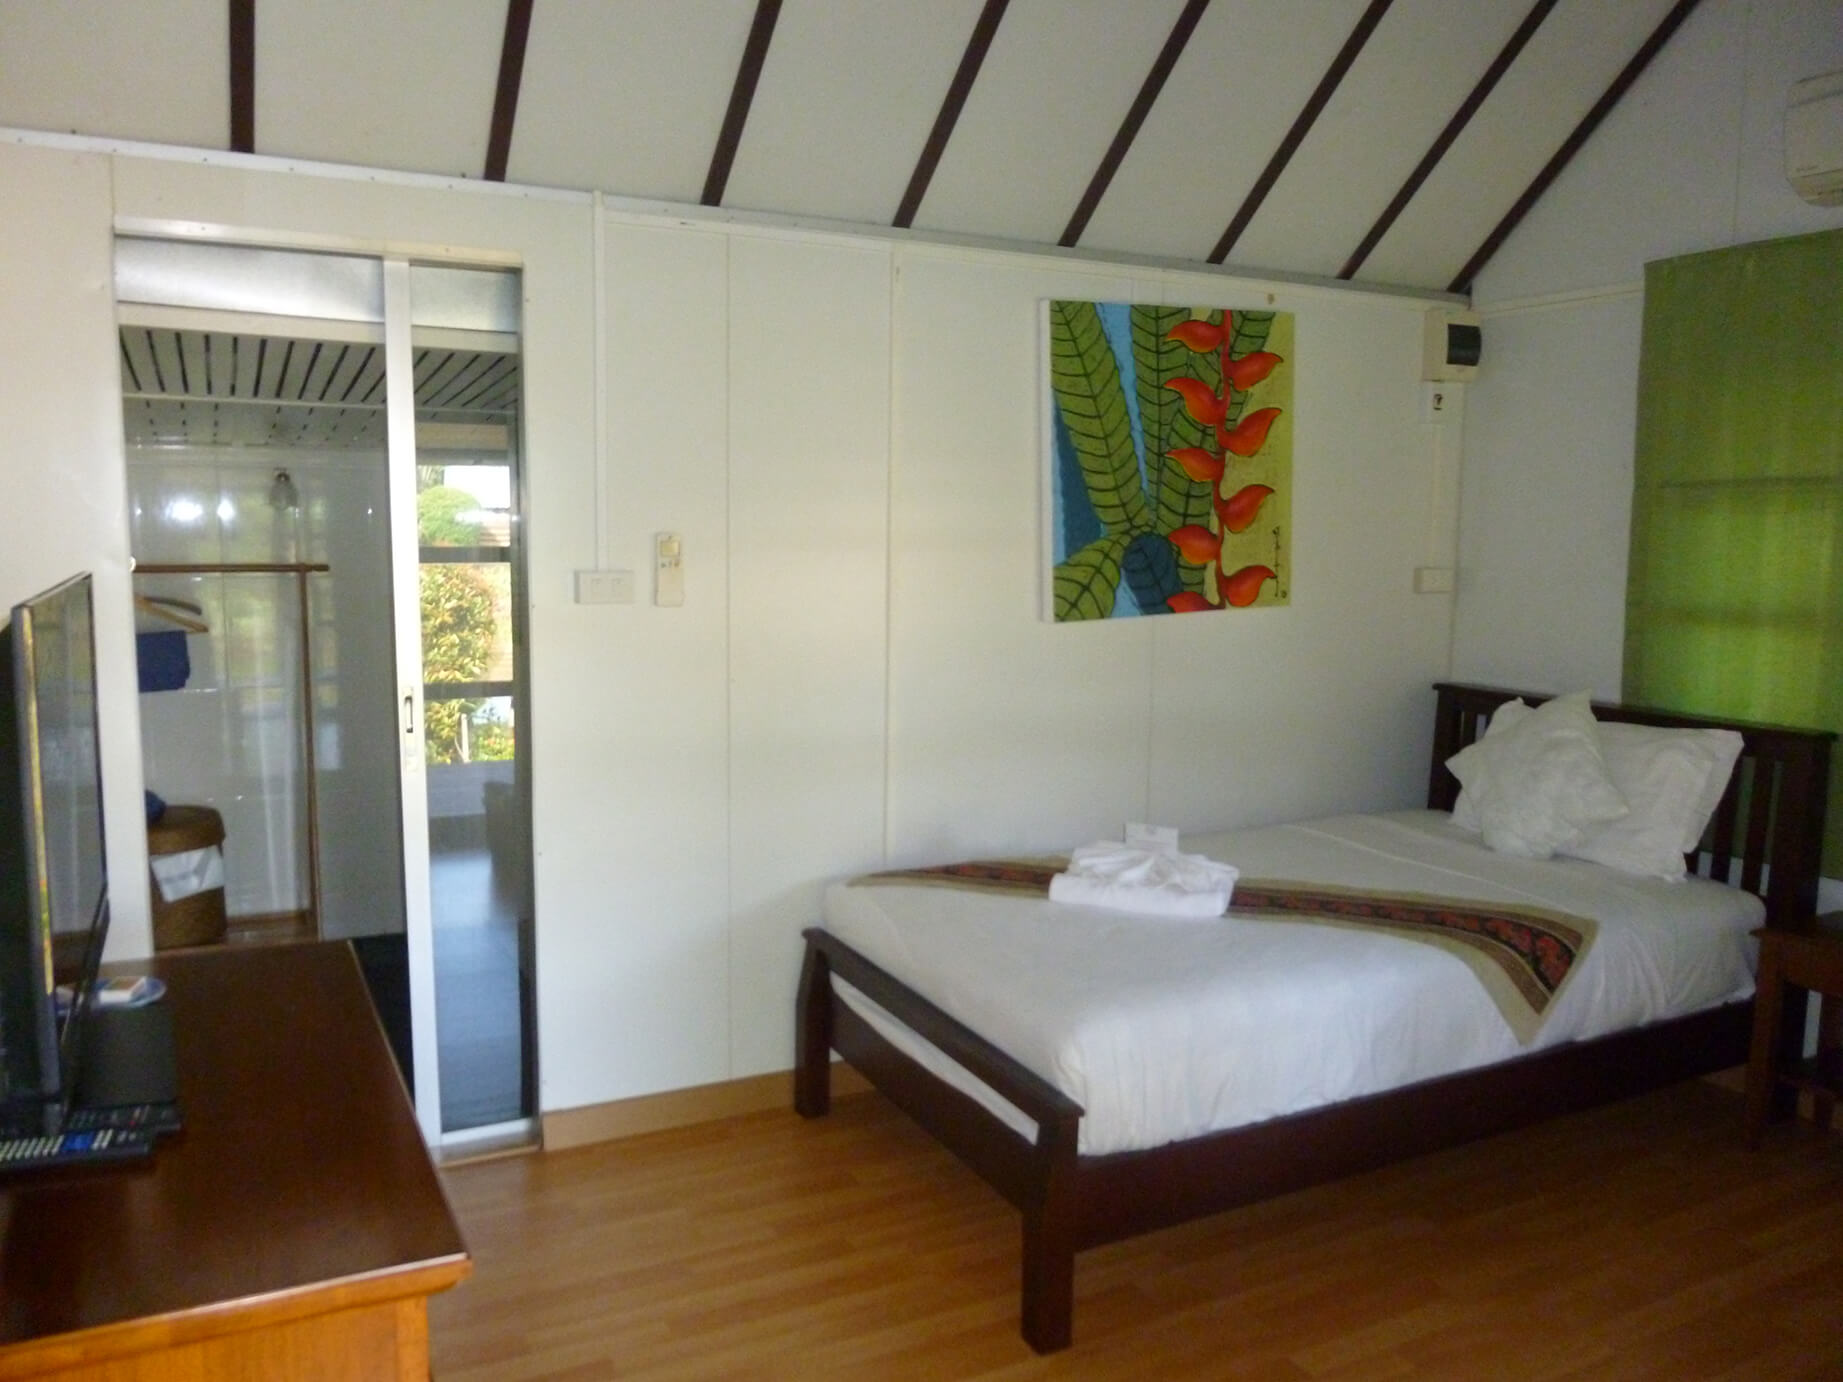 Atsumi lakeside cottage bedroom 3 (1)